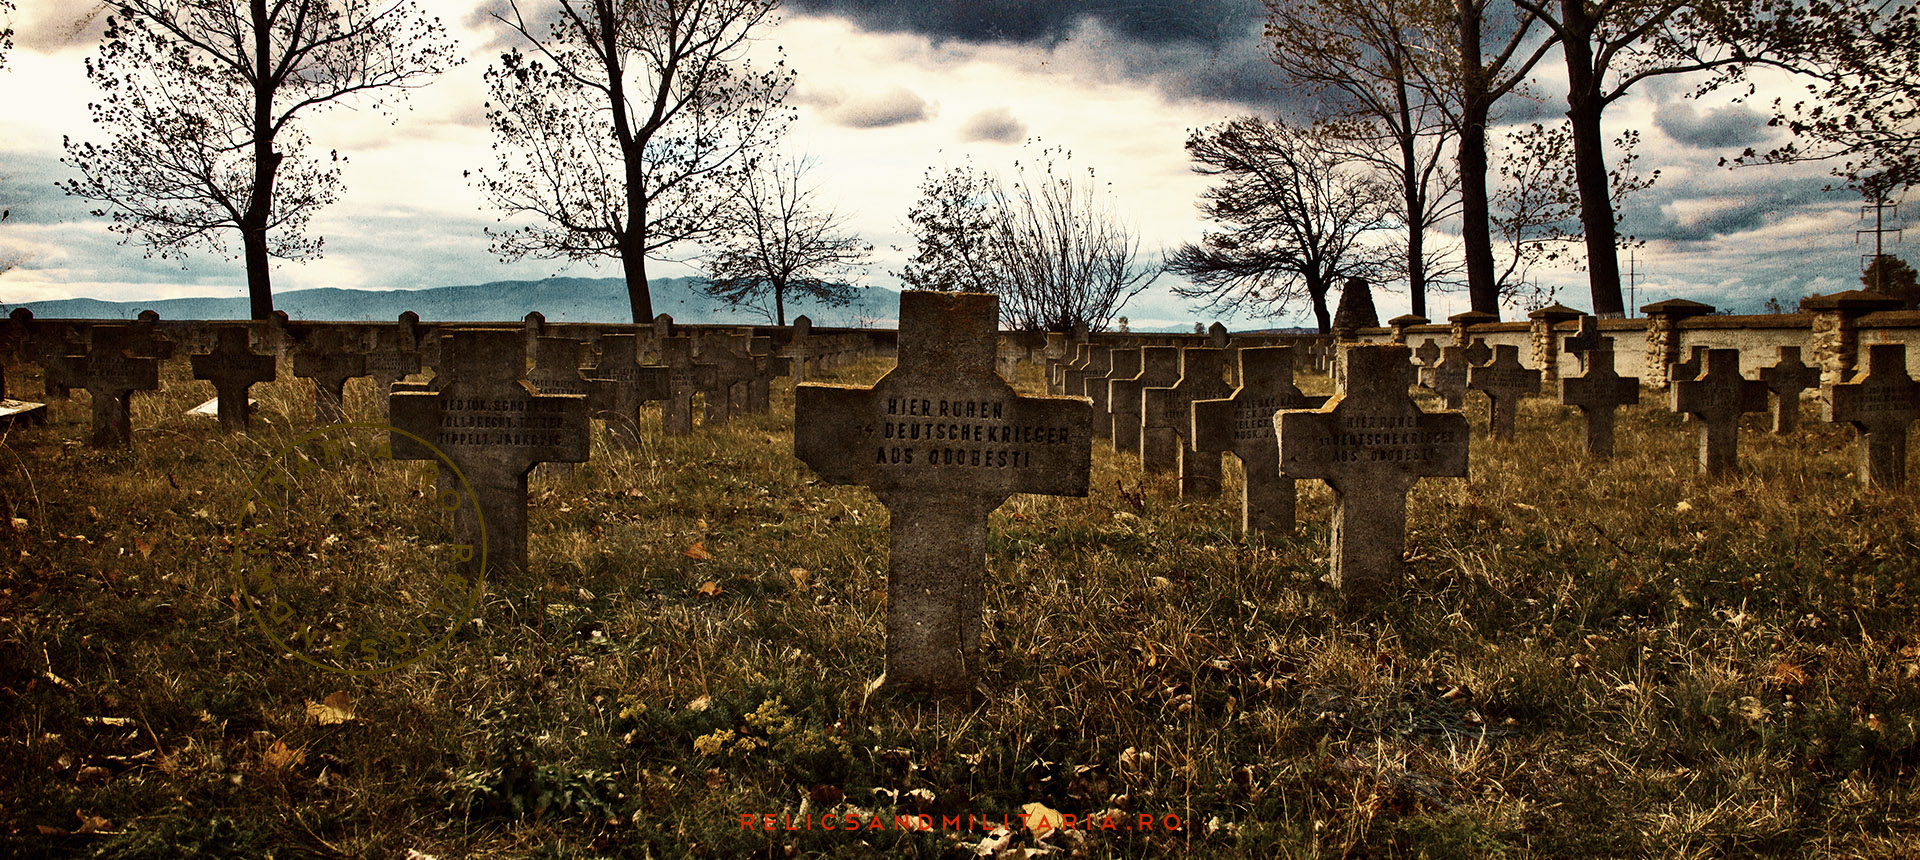 German cemetery Romania